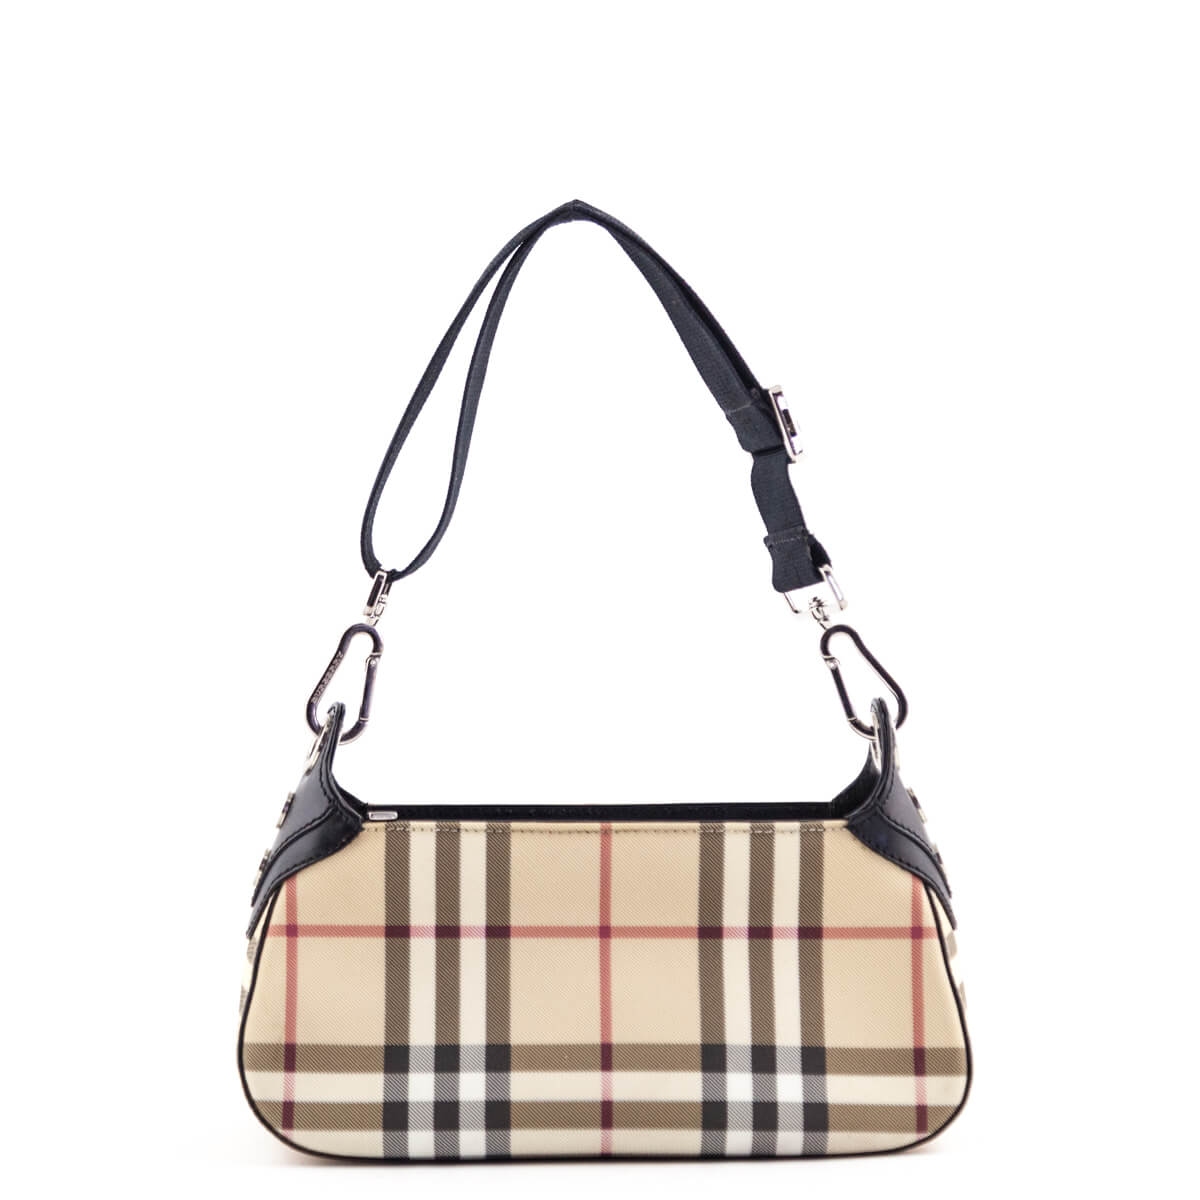 abaaa154a50 Burberry Classic Nova Check Mini Shoulder Bag - LOVE that BAG - Preowned  Authentic Designer Handbags ...